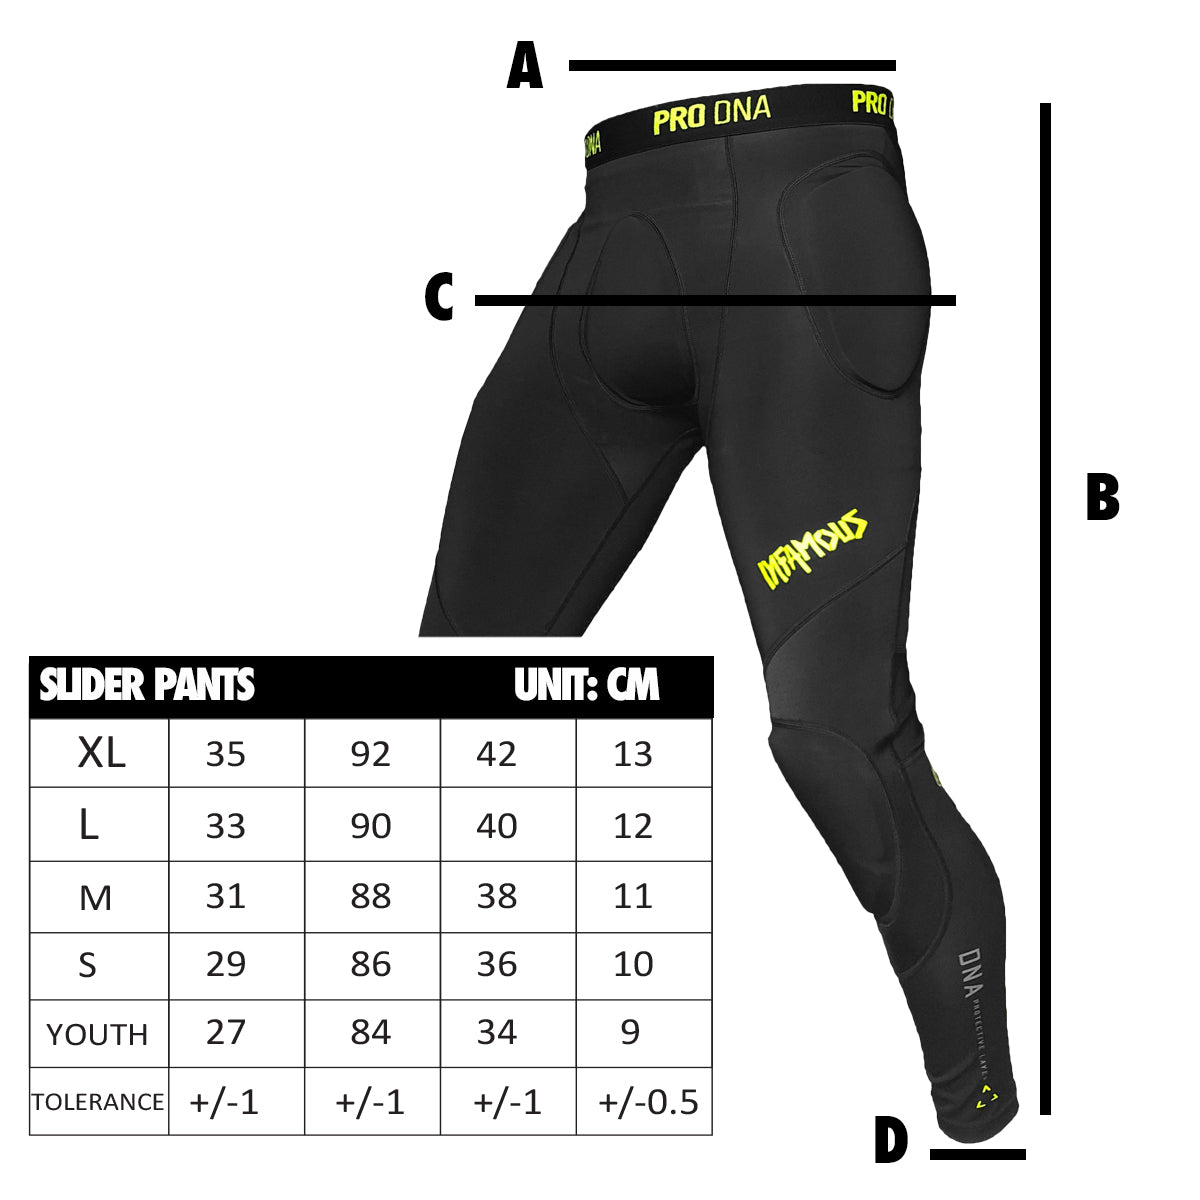 Infamous Pro DNA Slider Pants Sizing Chart